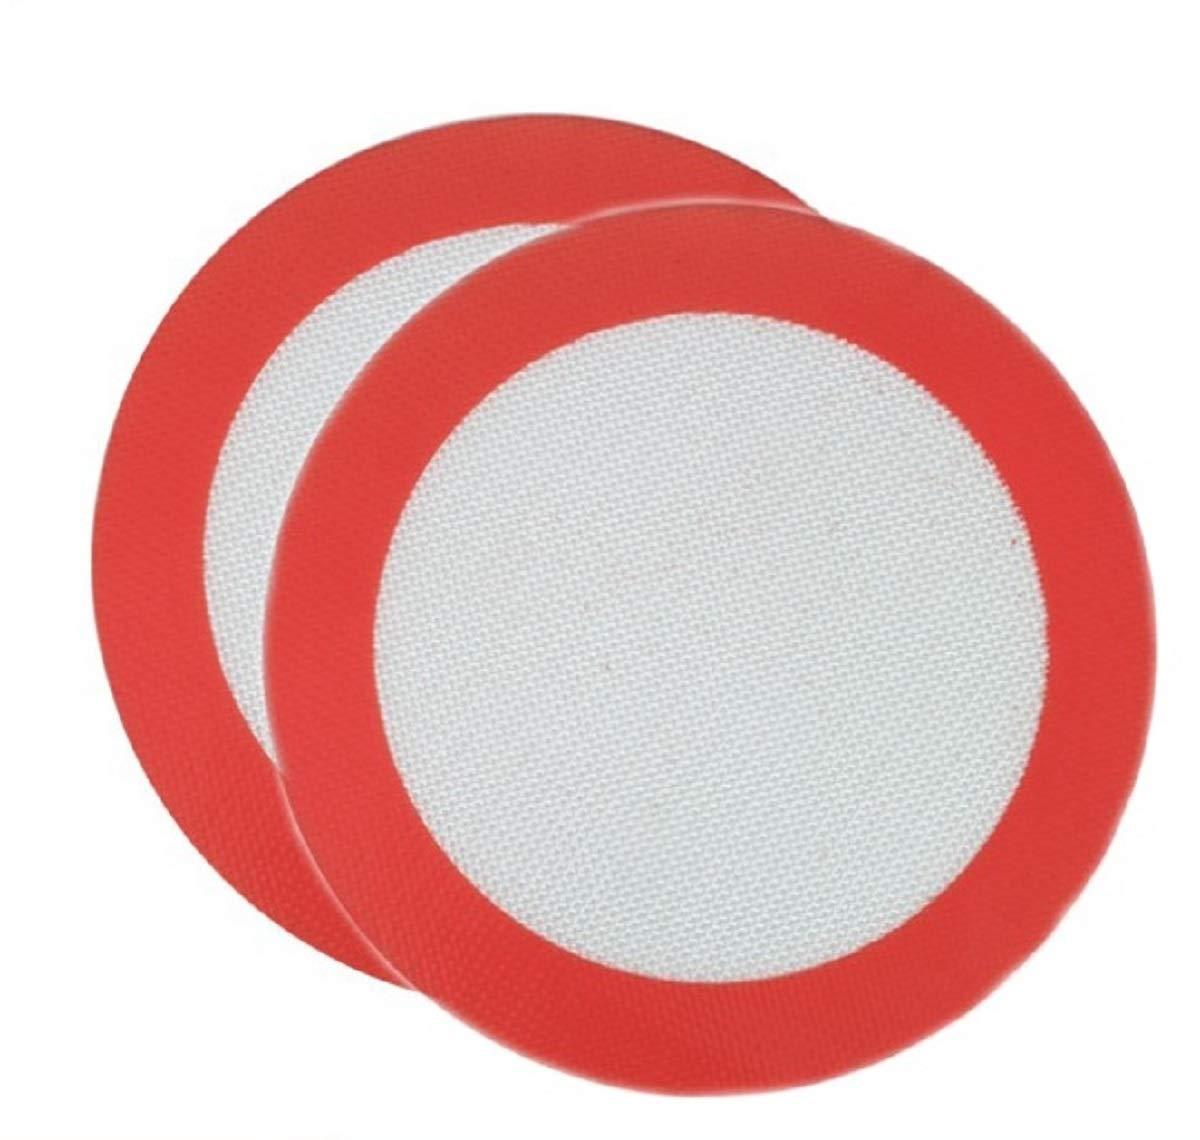 Premium Non Stick Reusable Round Silicone Baking Mat Set Of 2 Diameter 8.5 inch Perfect For 9 inch Round Cake Pan Liner Cheesecake Pan Springform Pan Bye Bye Round Parchment Paper